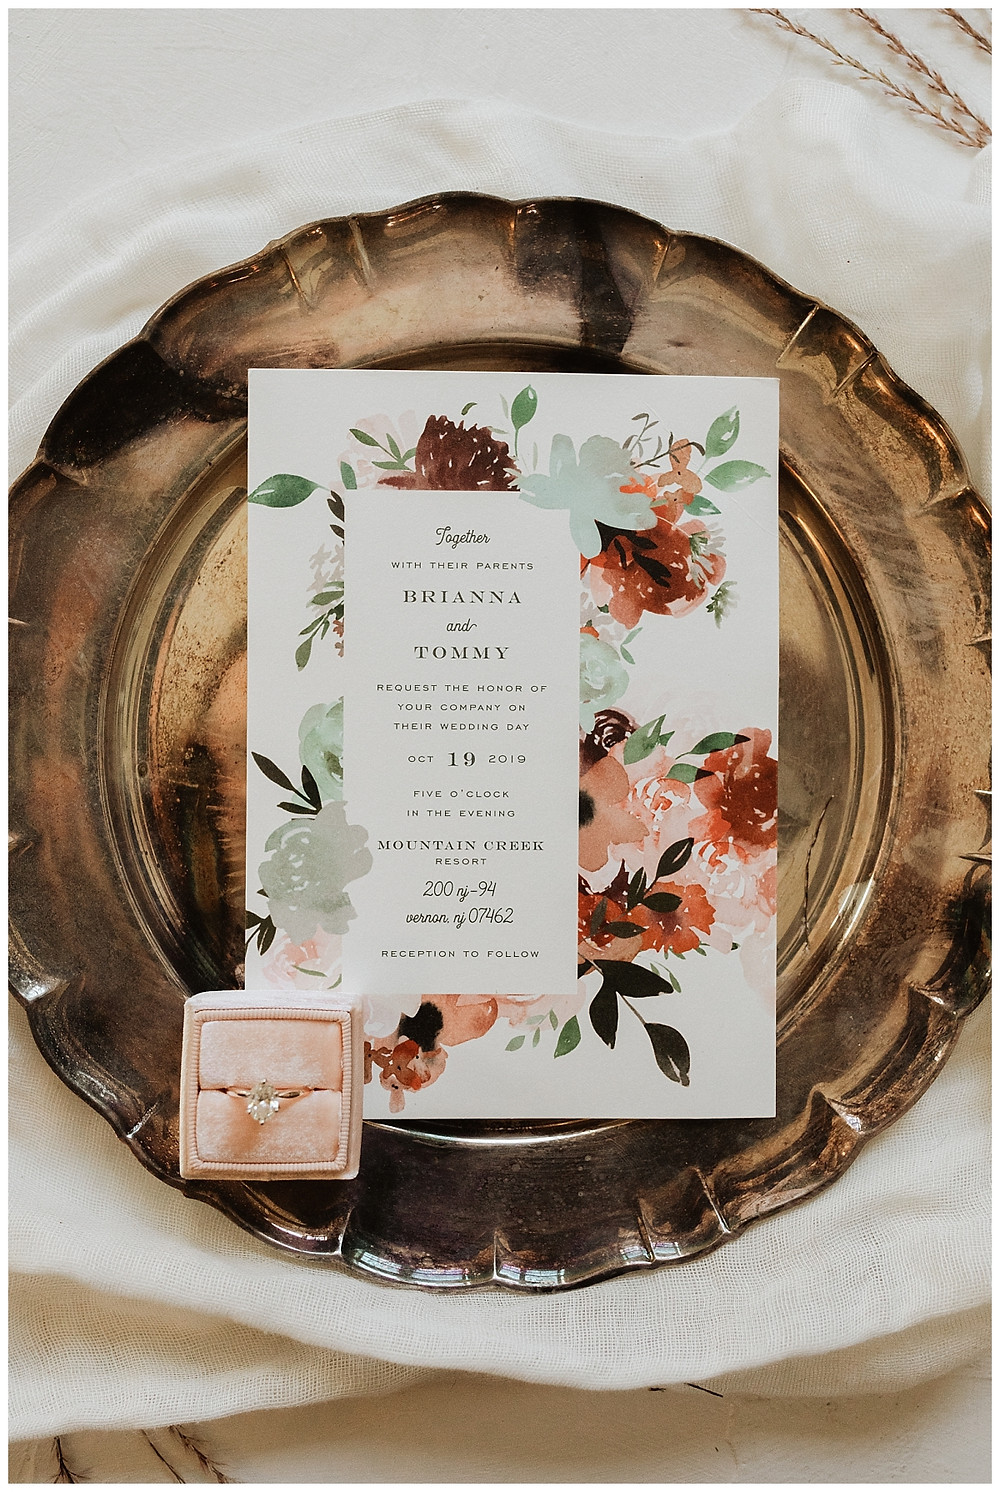 Vintage Wedding Invitations and Details